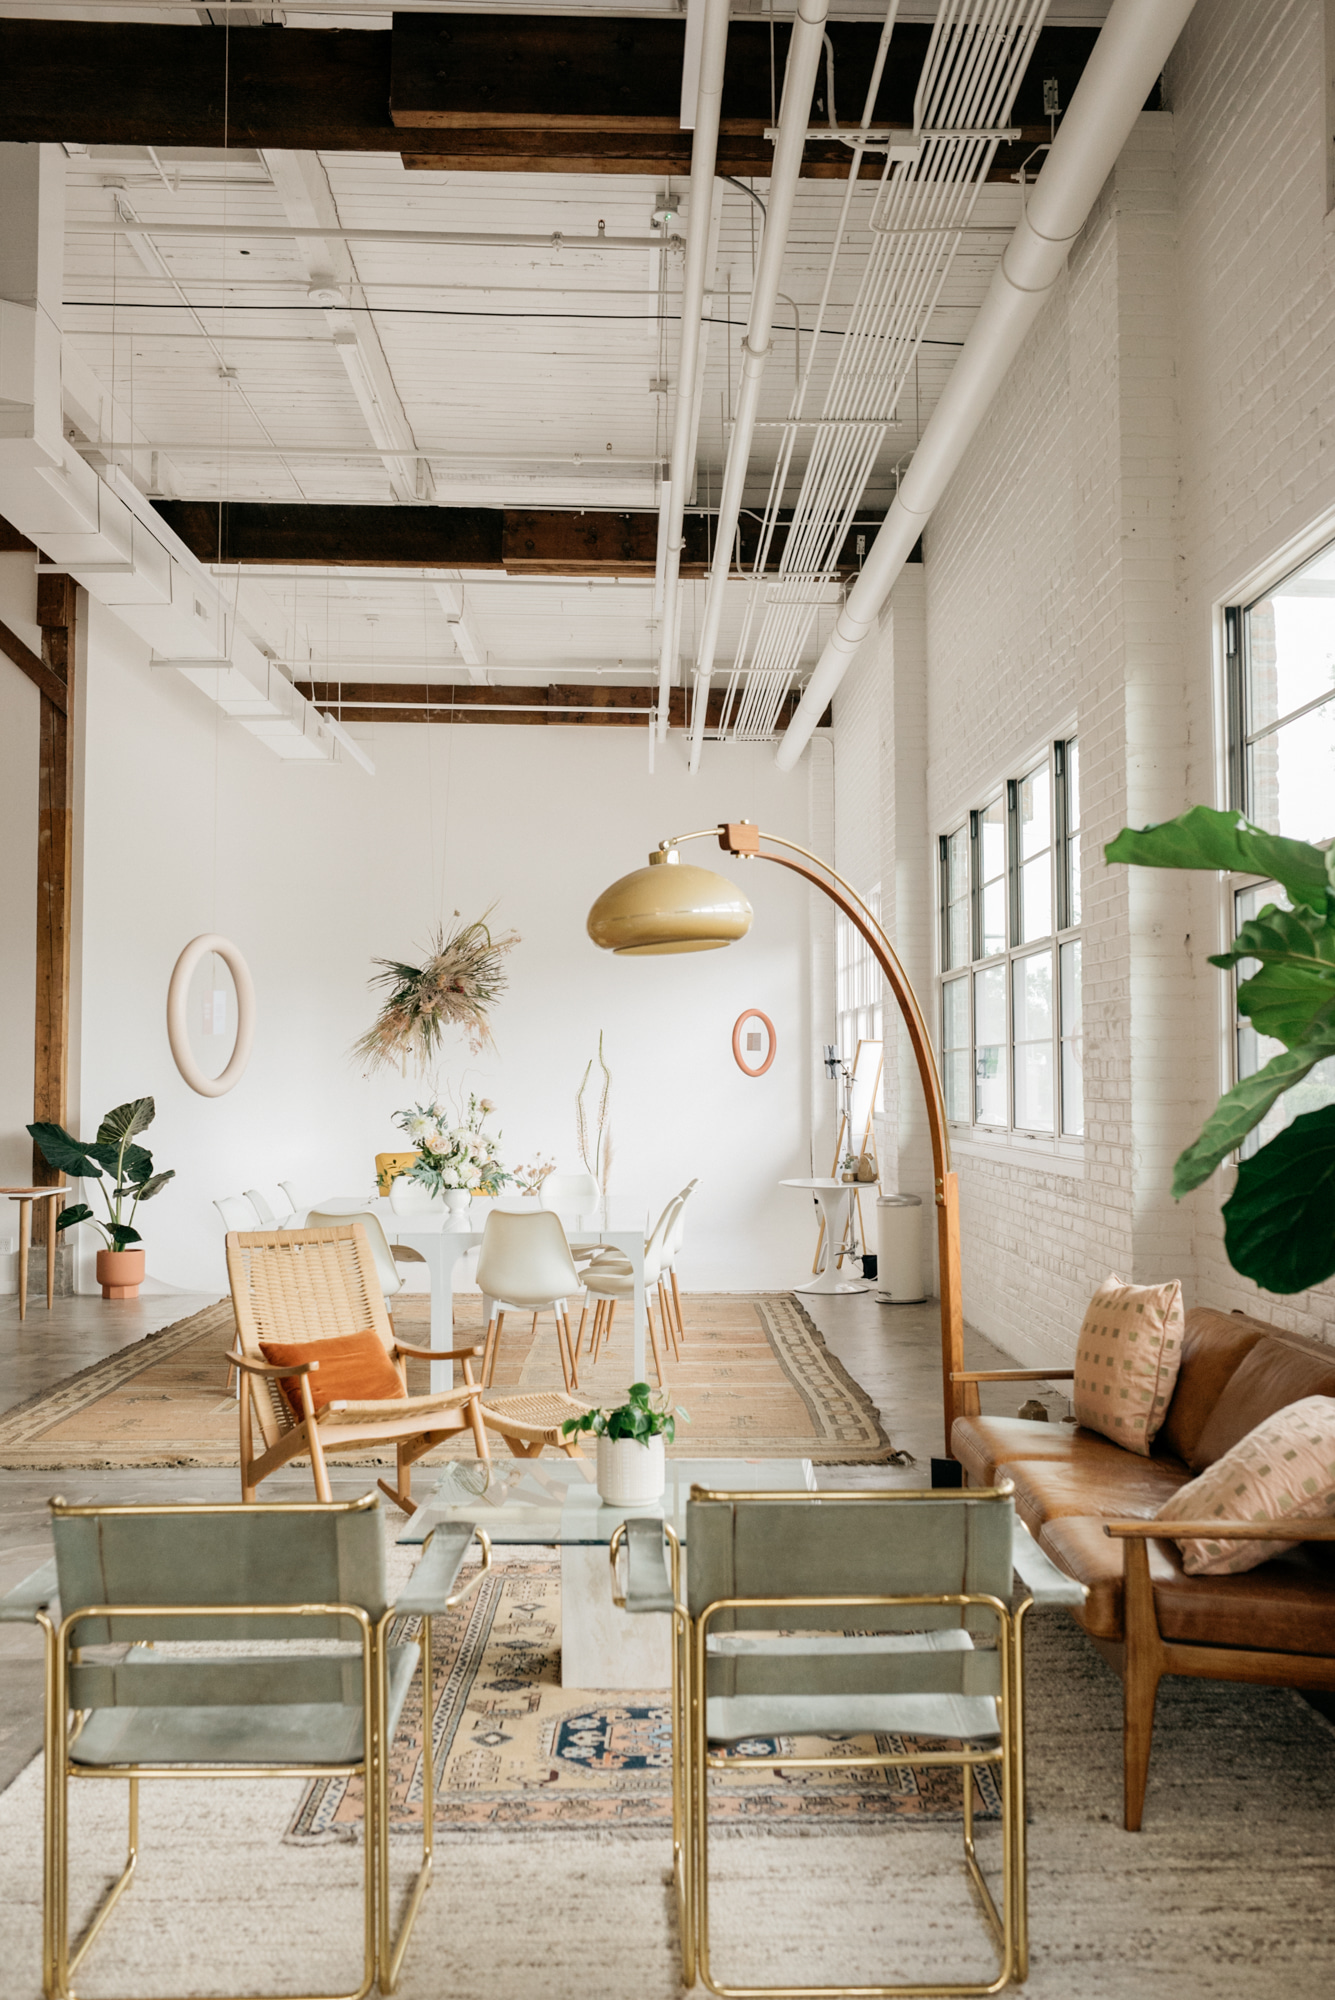 Cozy Interior Work Space With White Walls and High Ceilings